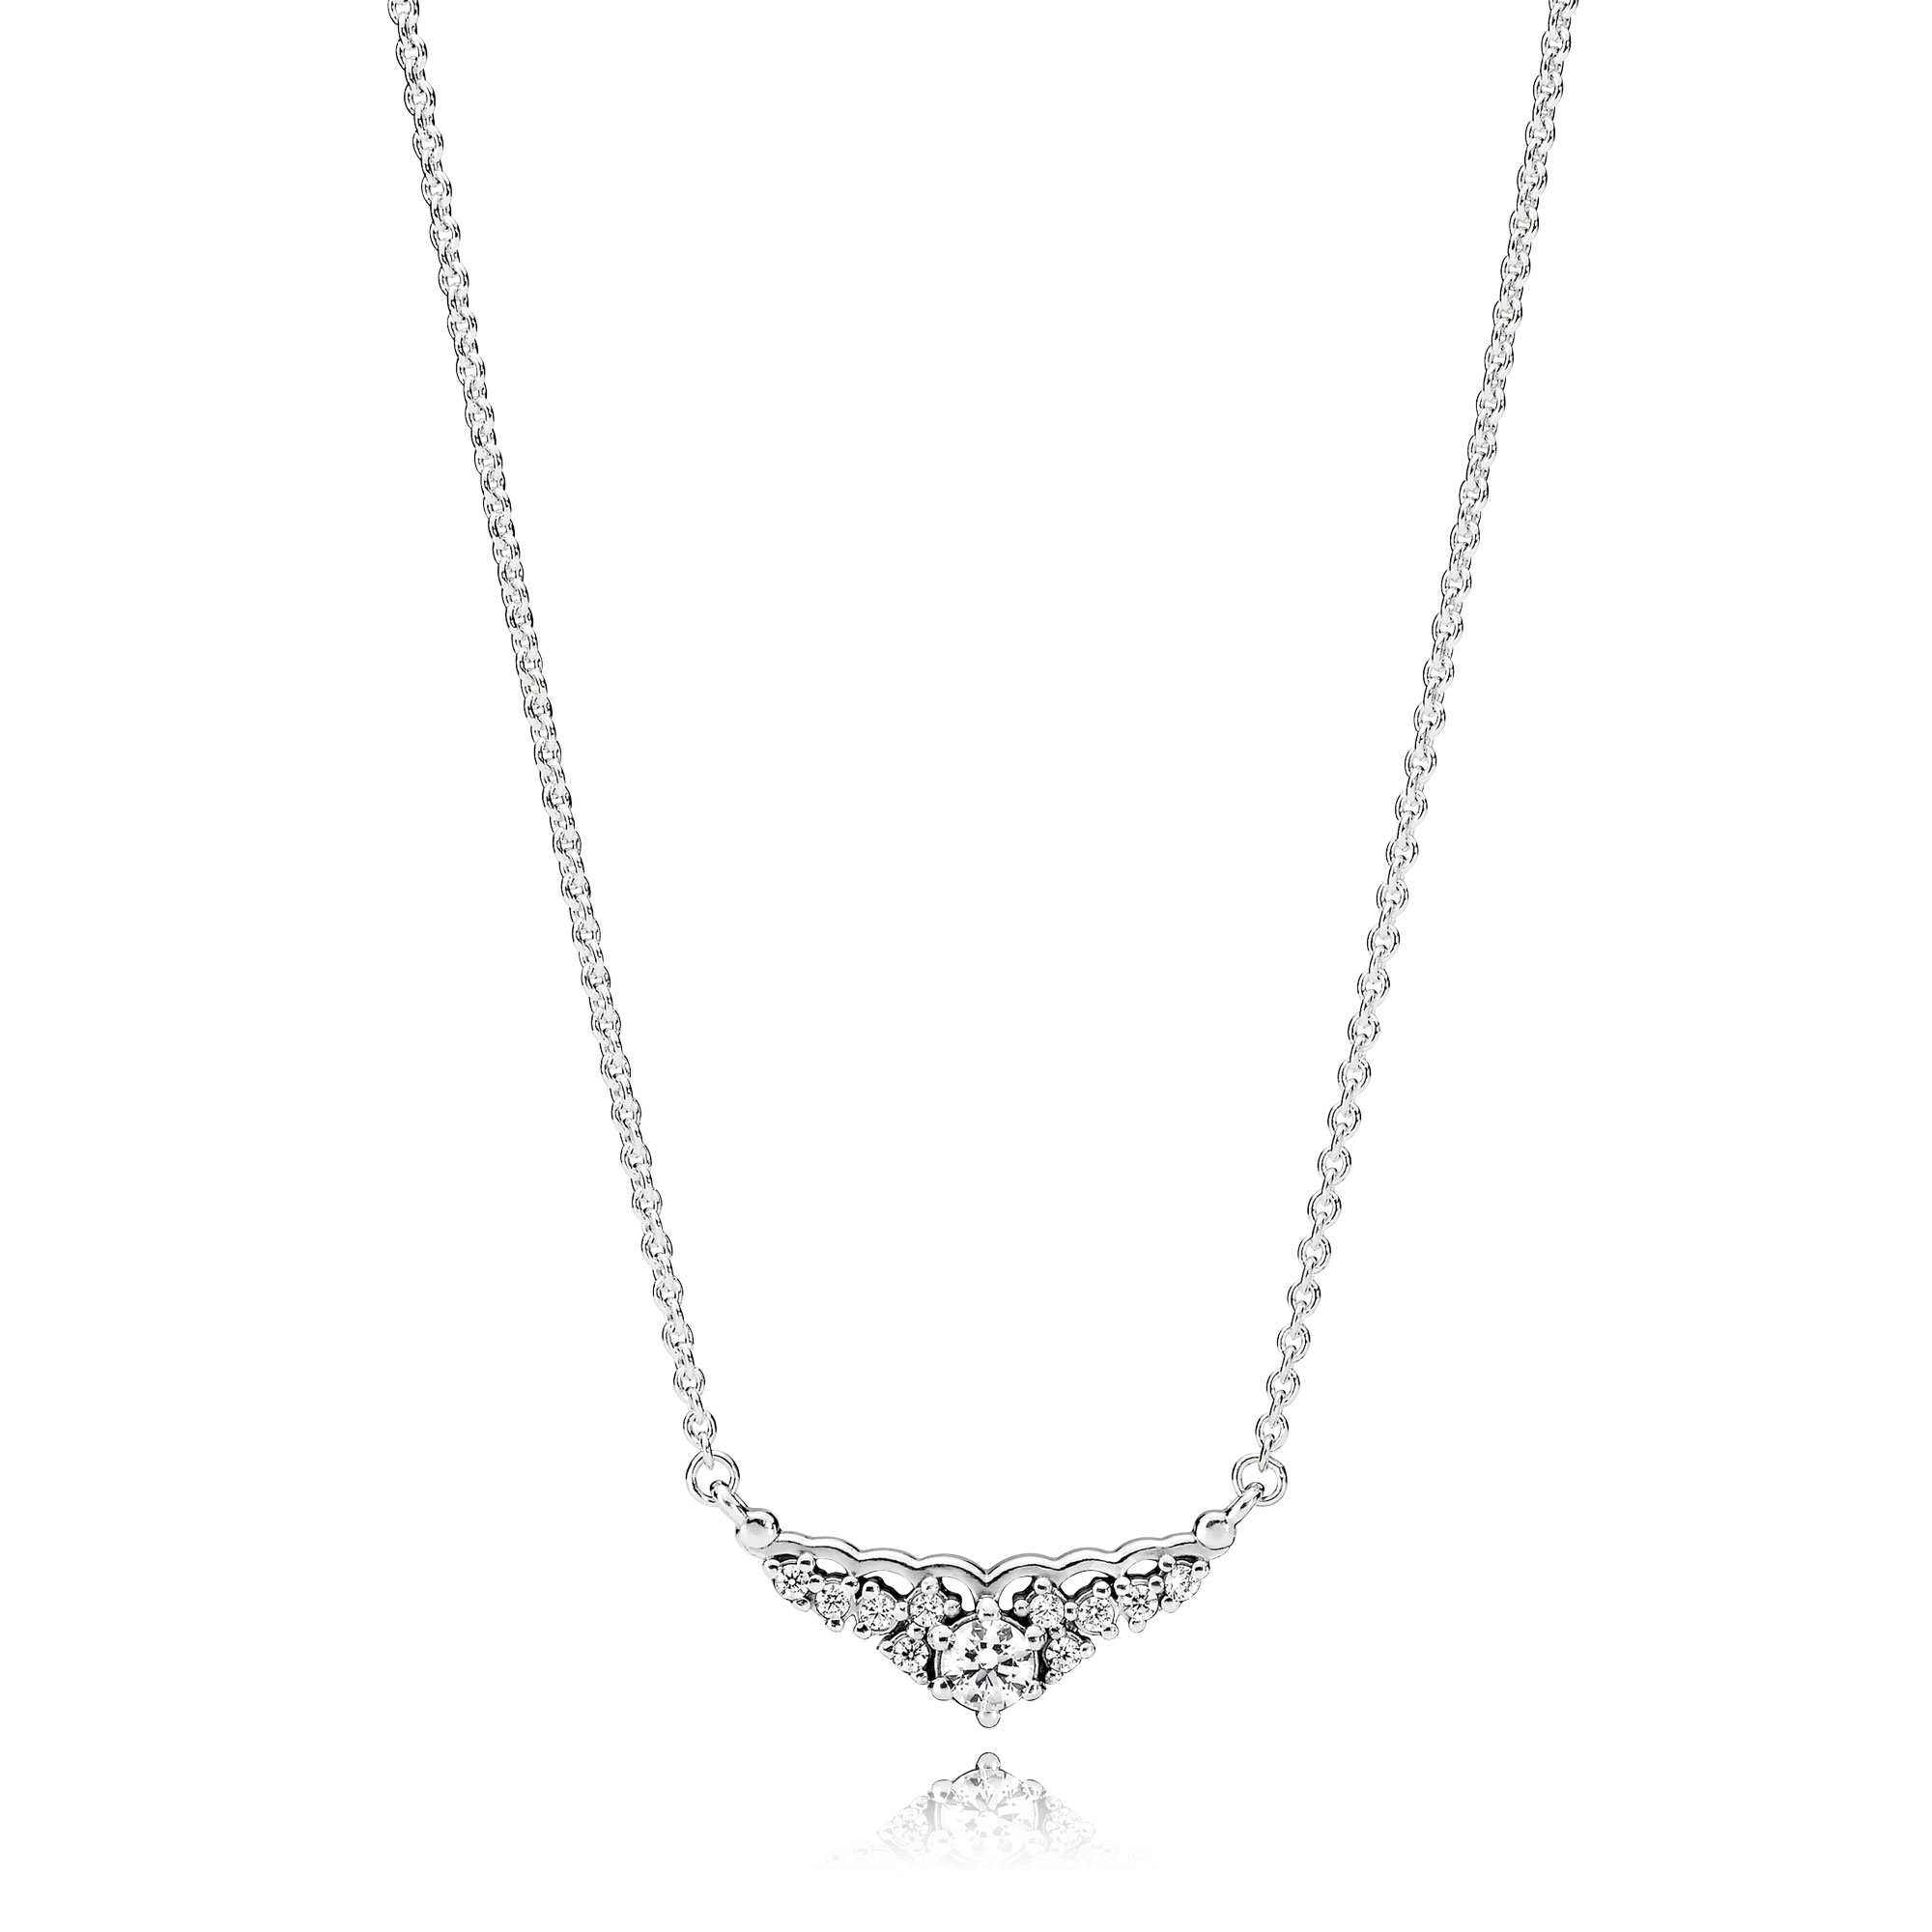 Fairytale Tiara Necklace, Clear CZ